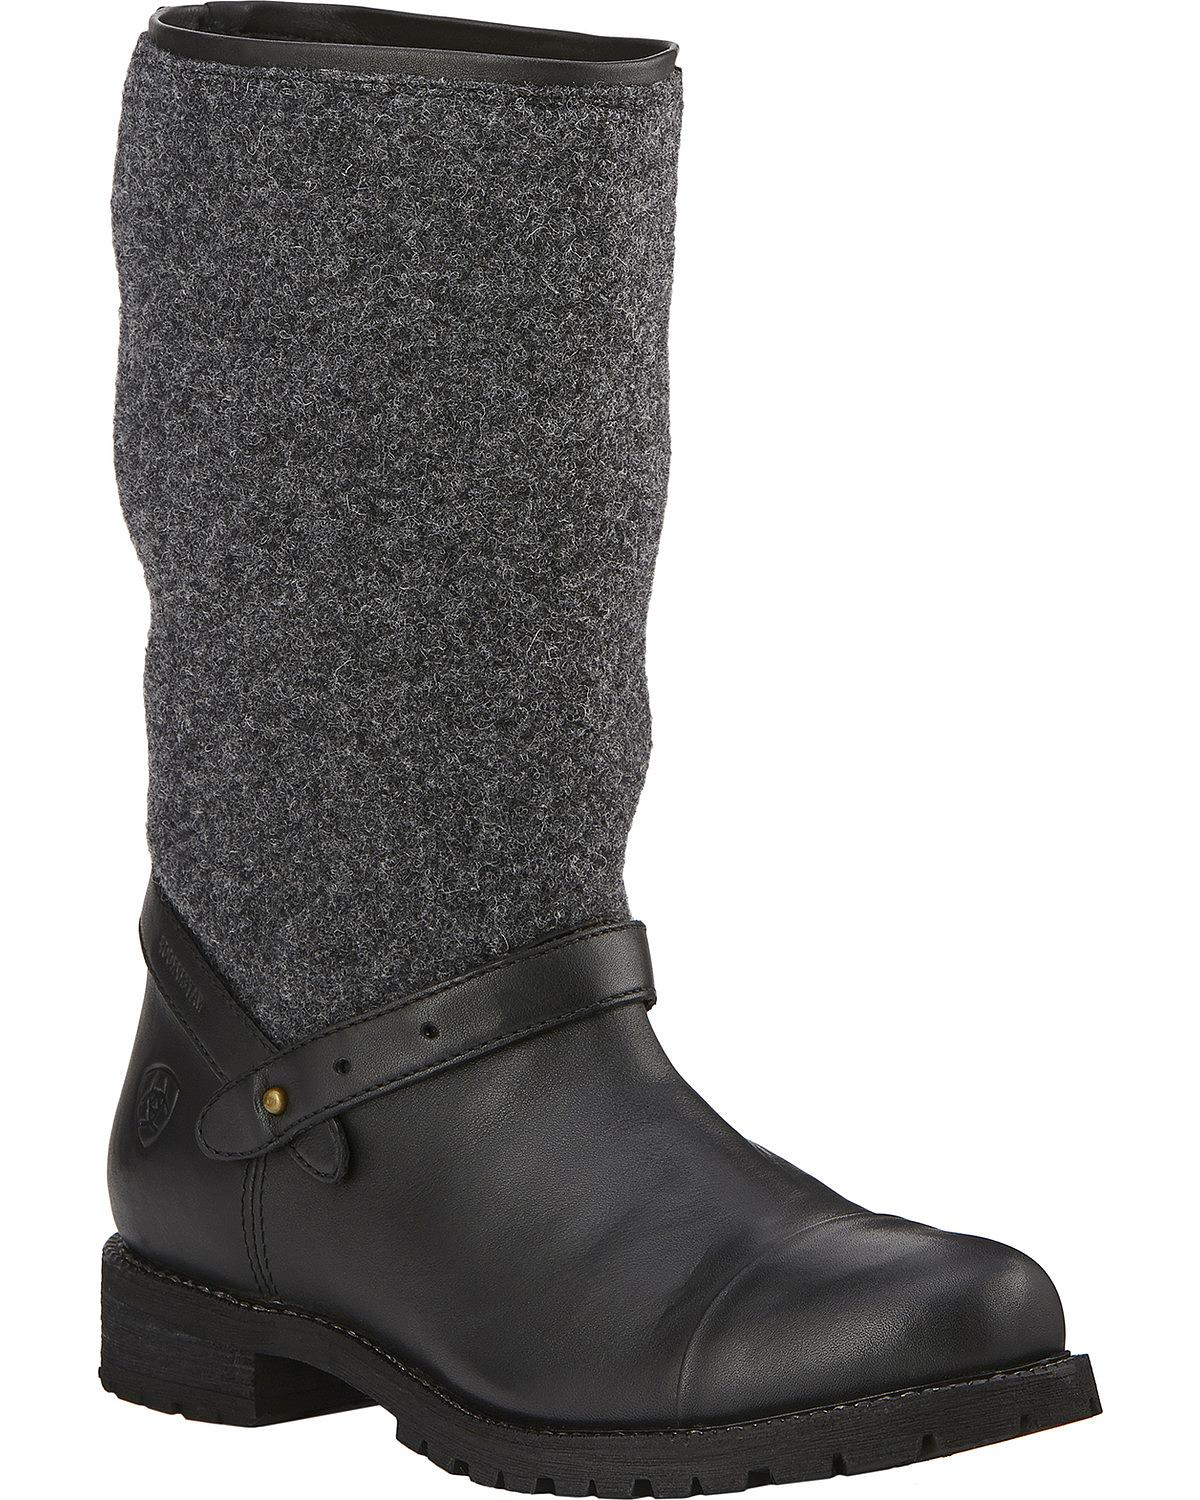 Ariat 1729 Womens Chatsworth H20 Black Winter BOOTS Shoes 7.5 ...